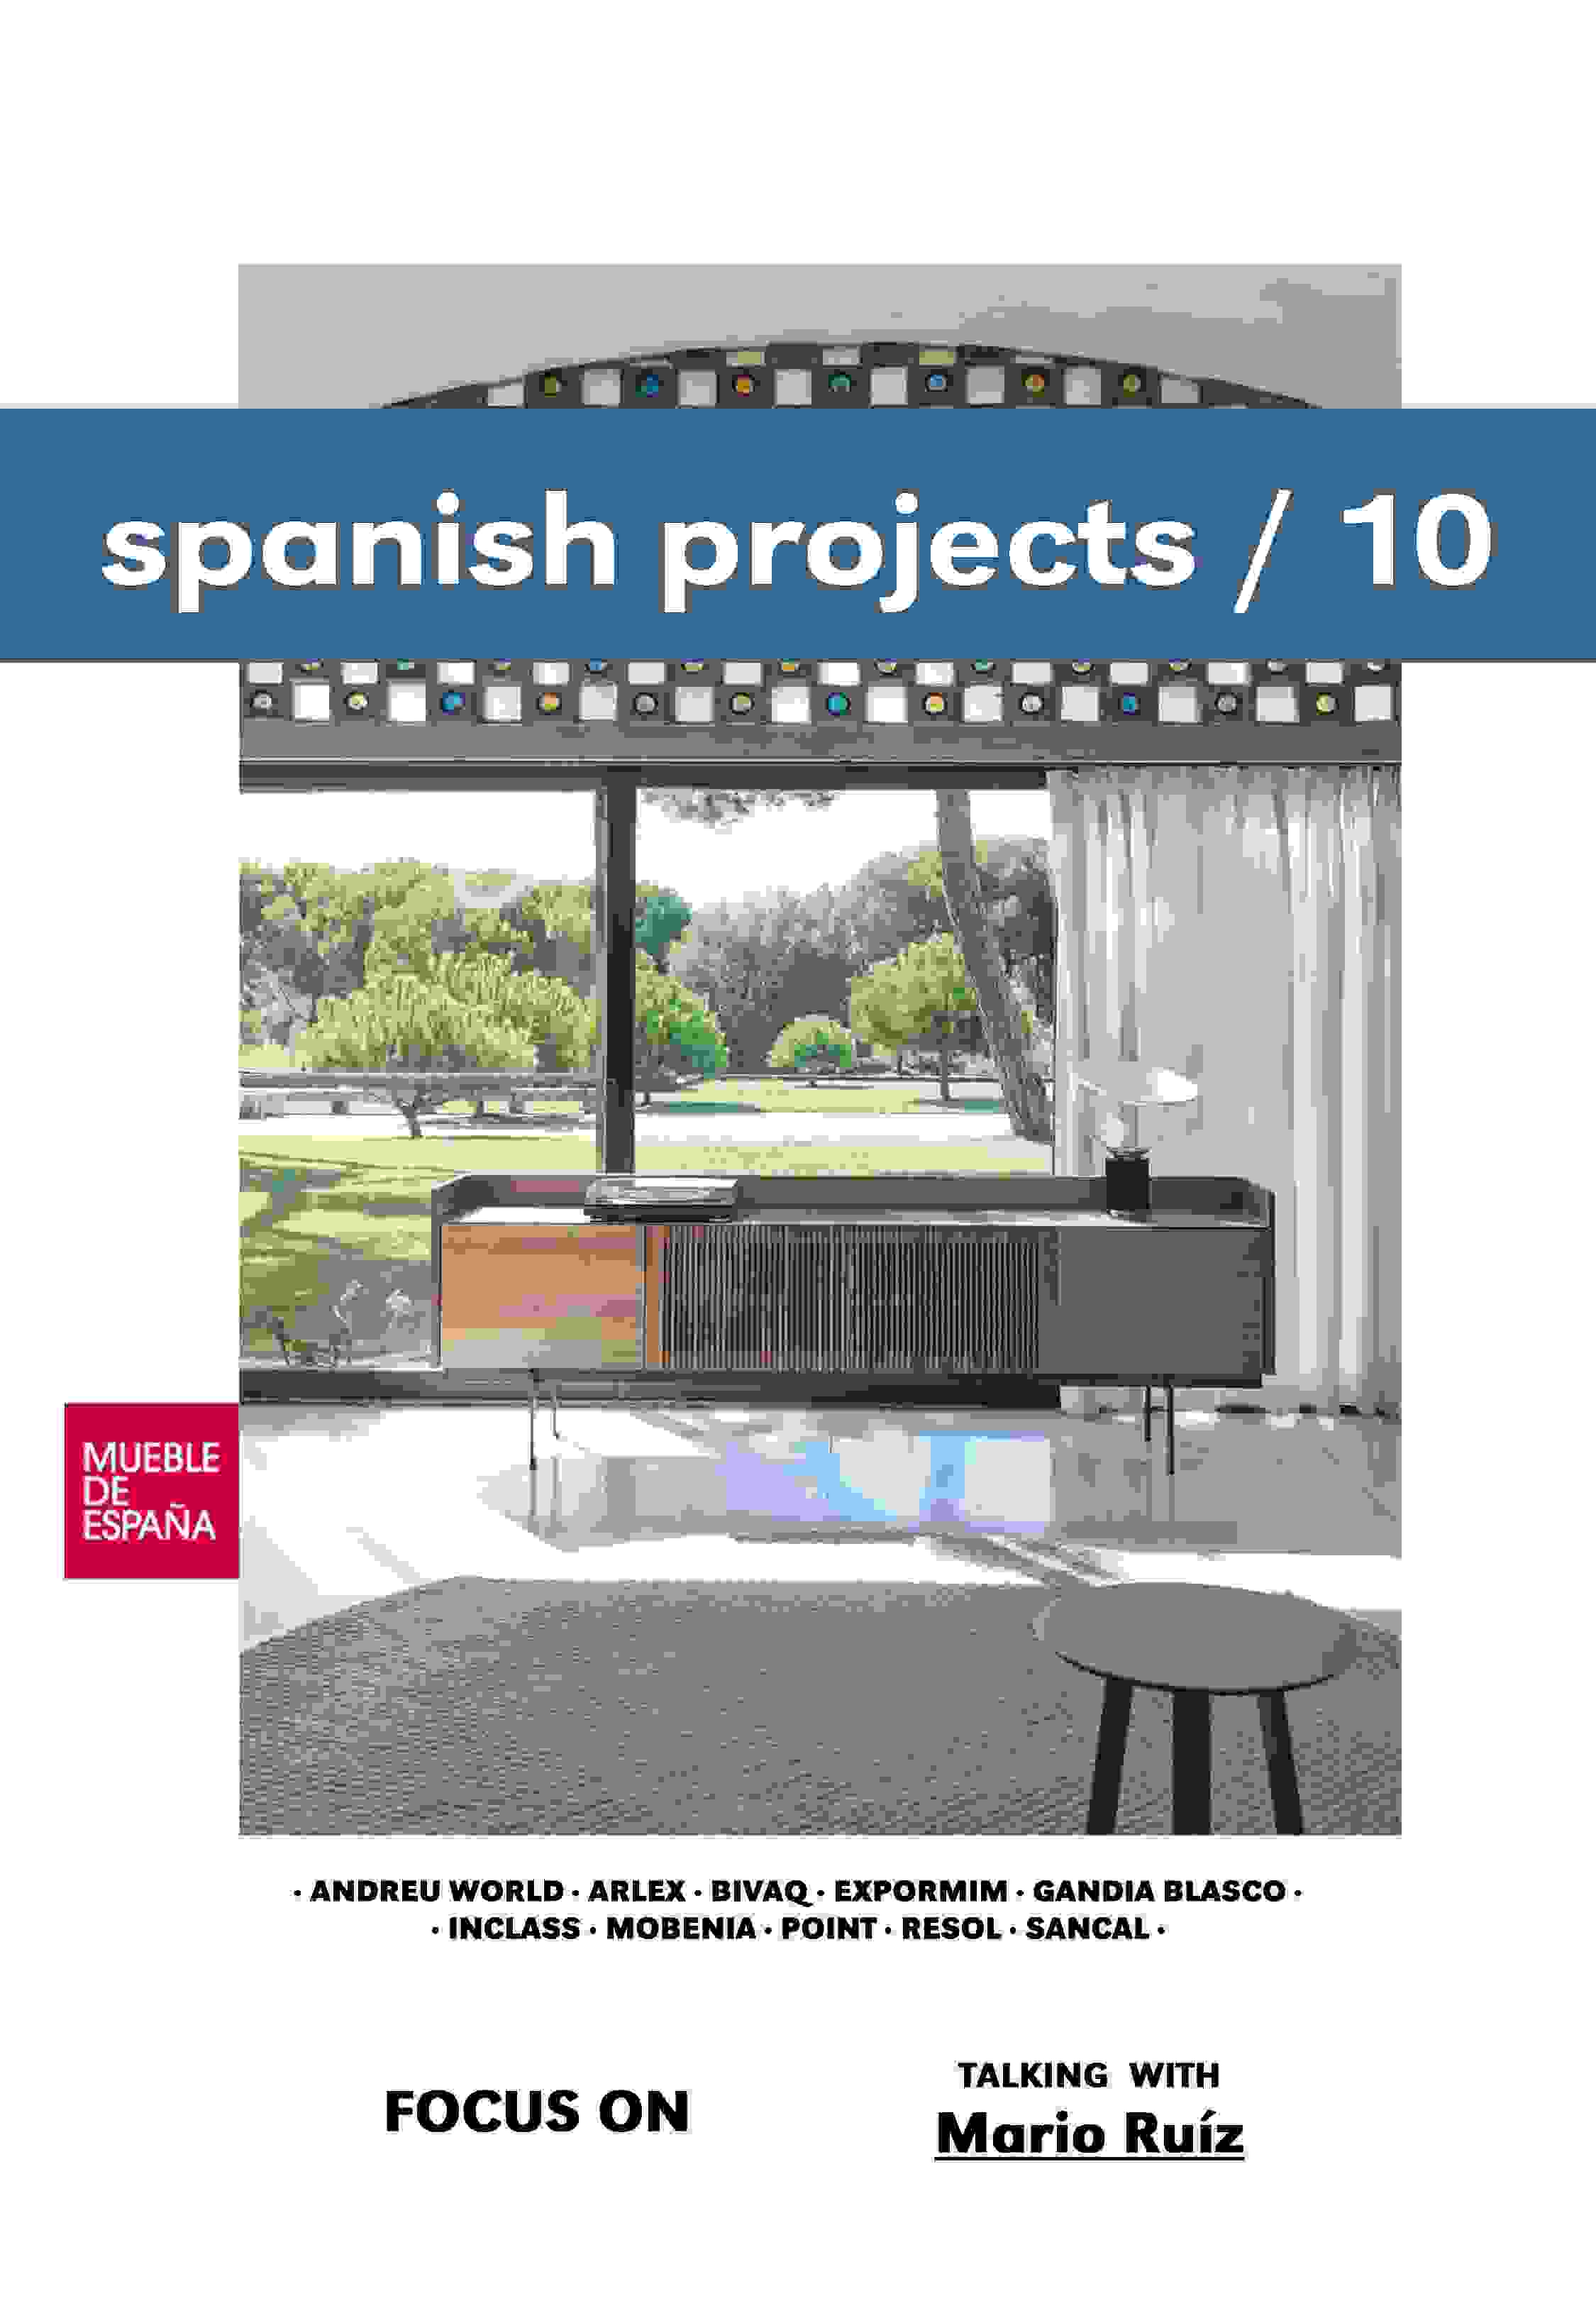 Spanish projects_10_portada.jpg